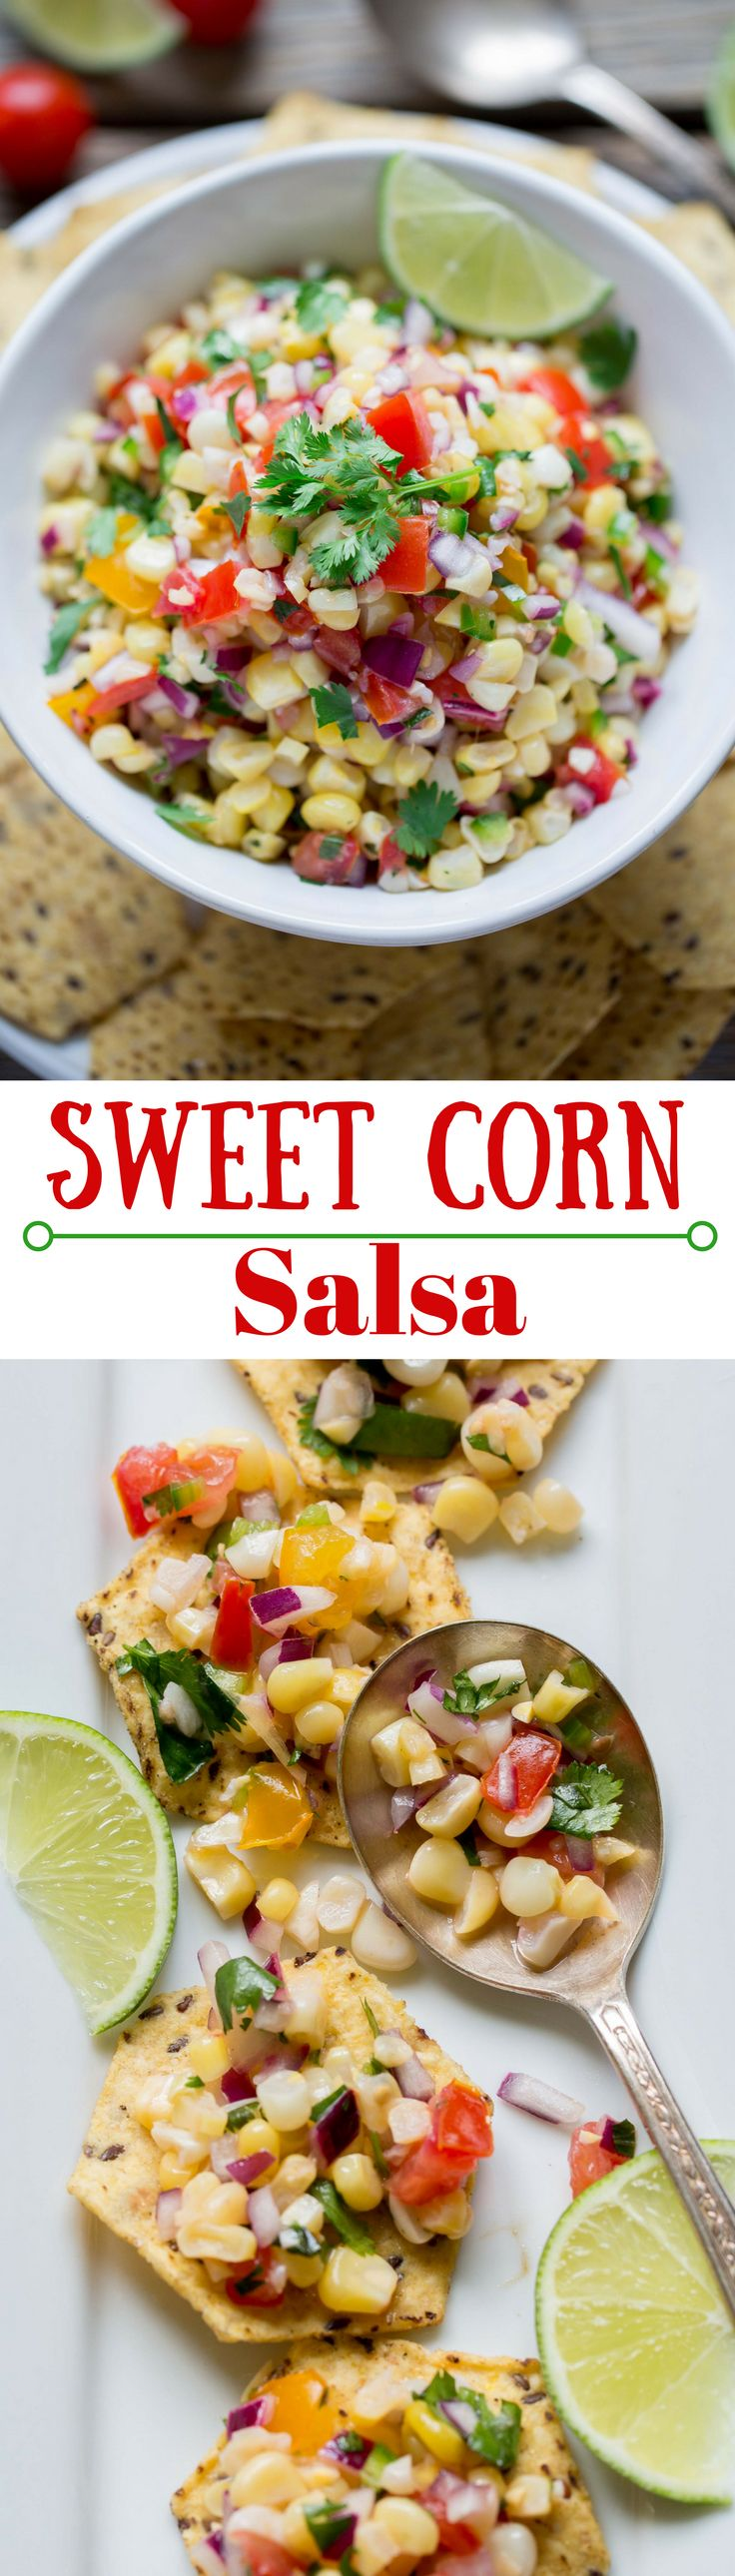 Sweet Corn Salsa - Sweet summer corn is the star of this fresh tasty salsa. Great served with chips, on chicken, fish or tacos - it's great on everything! www.savingdessert.com